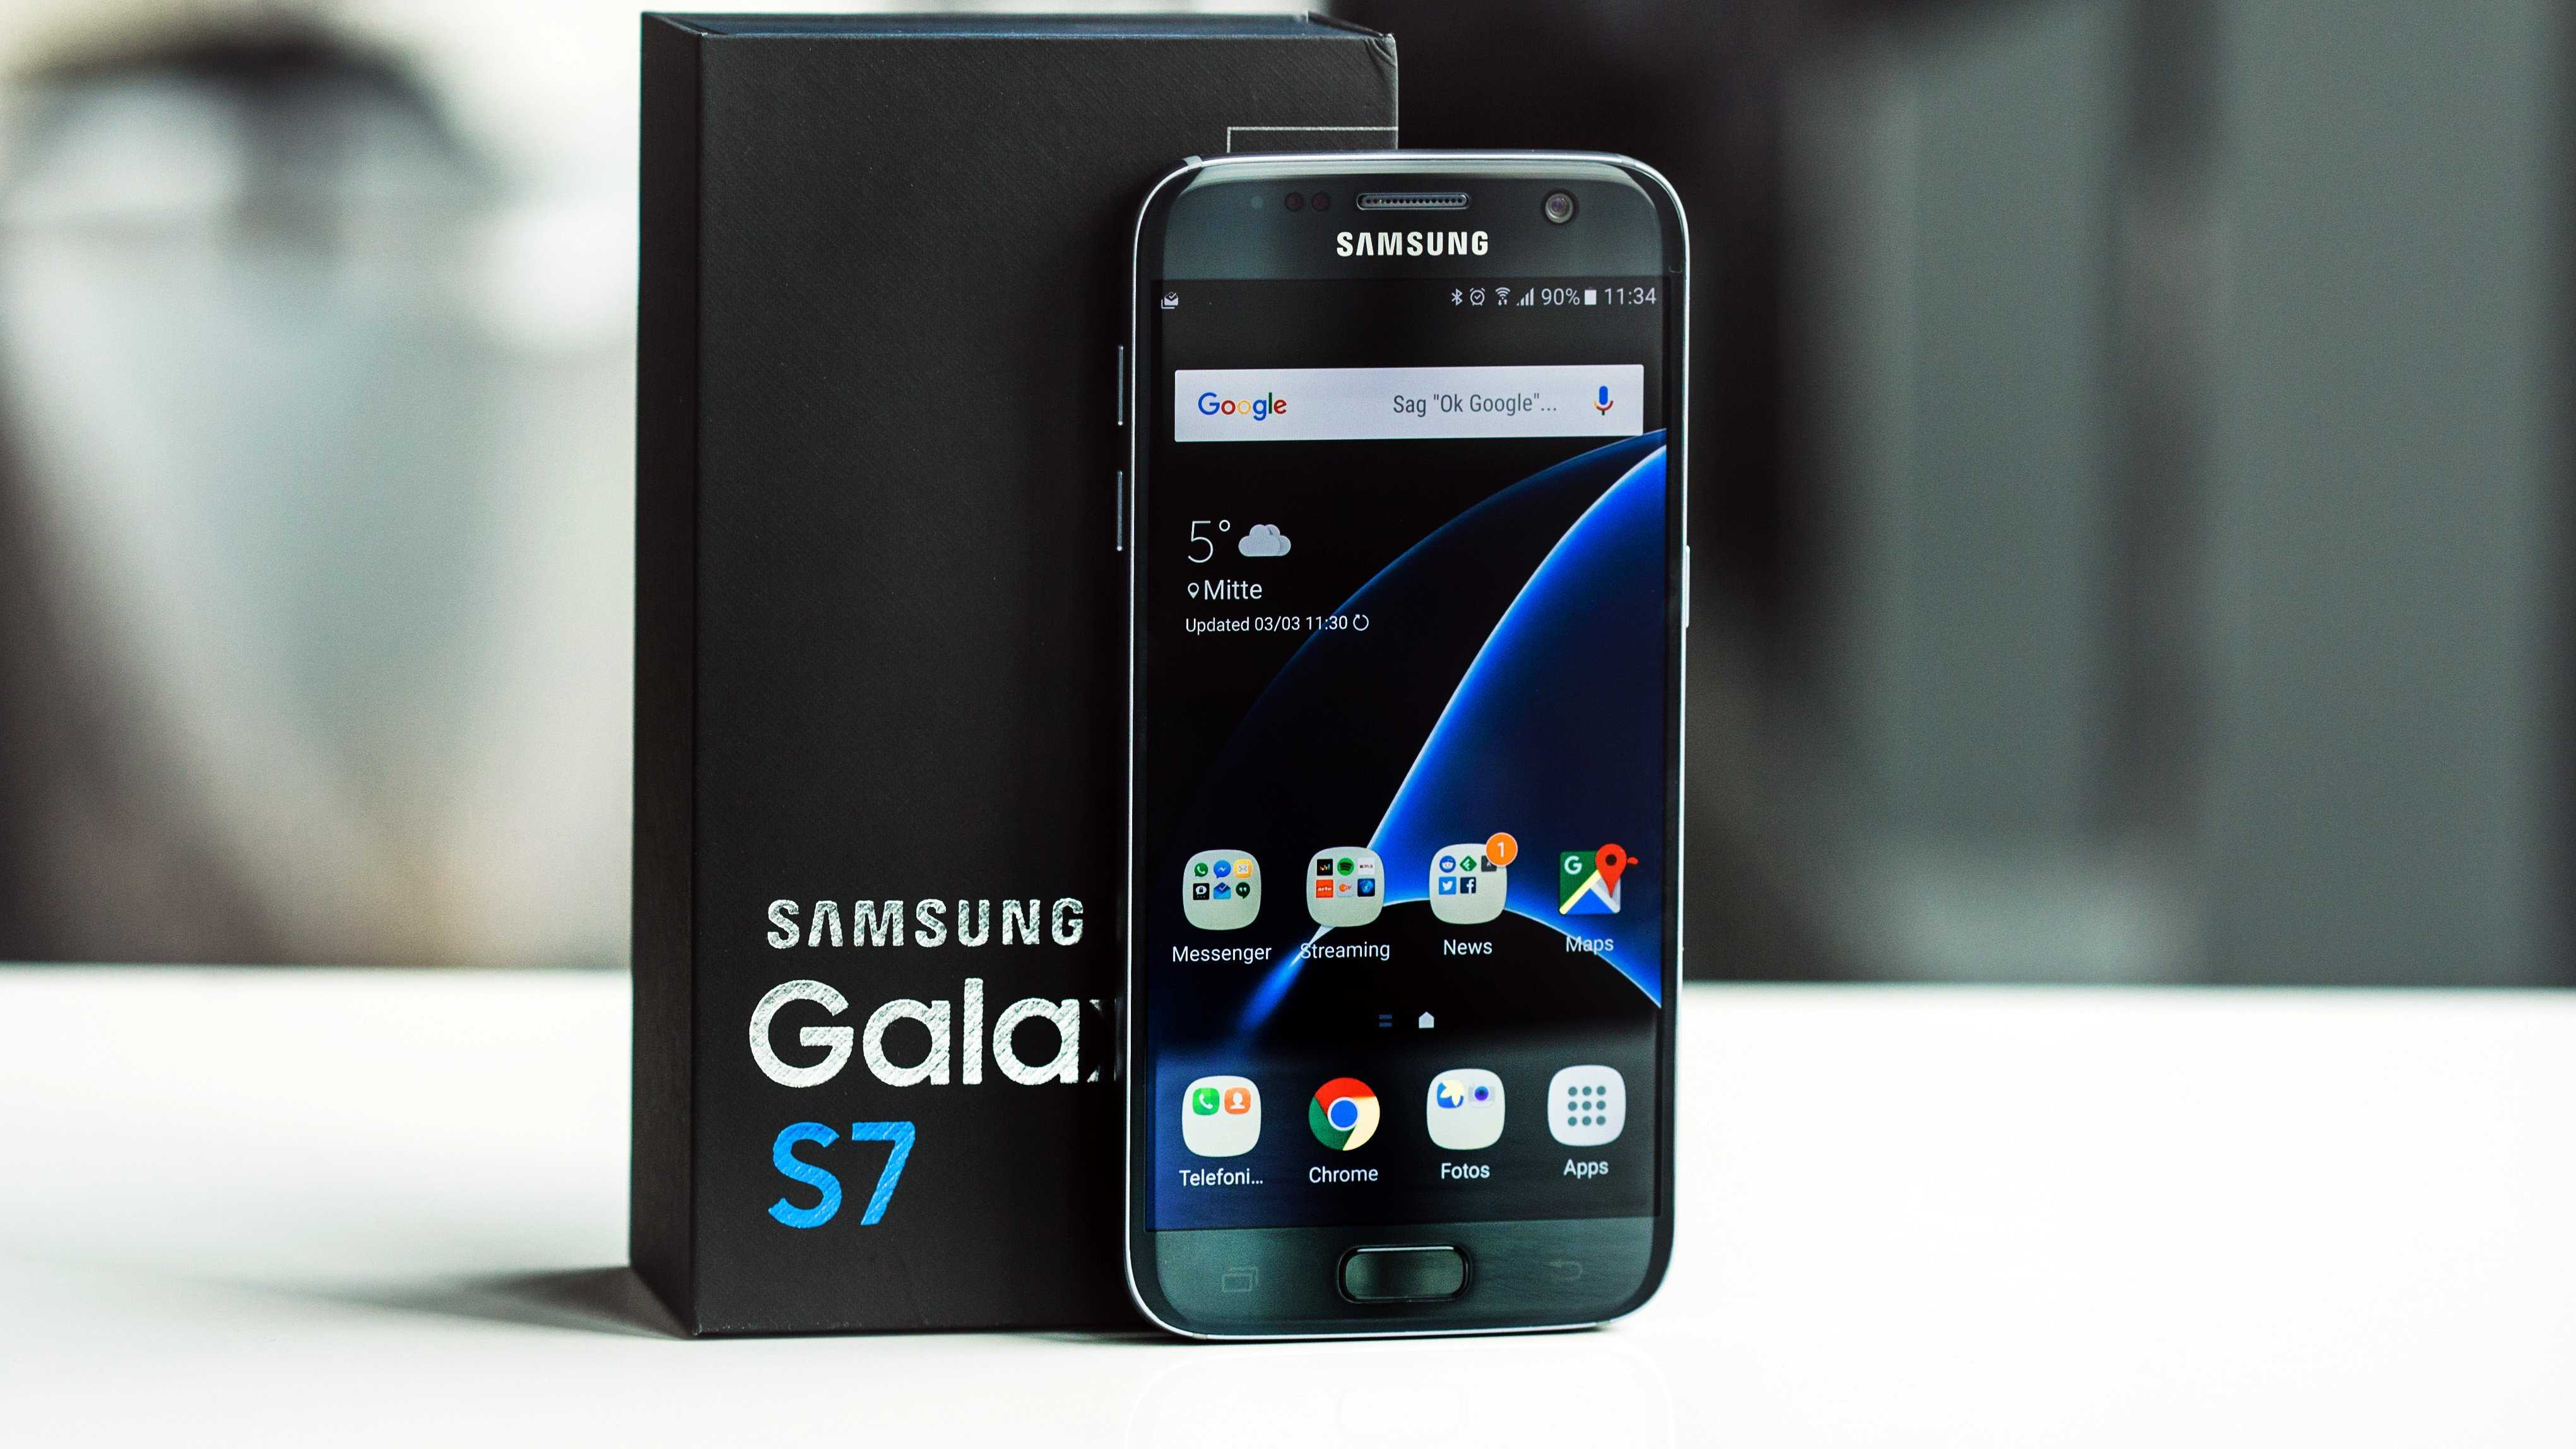 Deal New Samsung Galaxy S7 Dual Sim Selling At A Huge Discount On Ebay